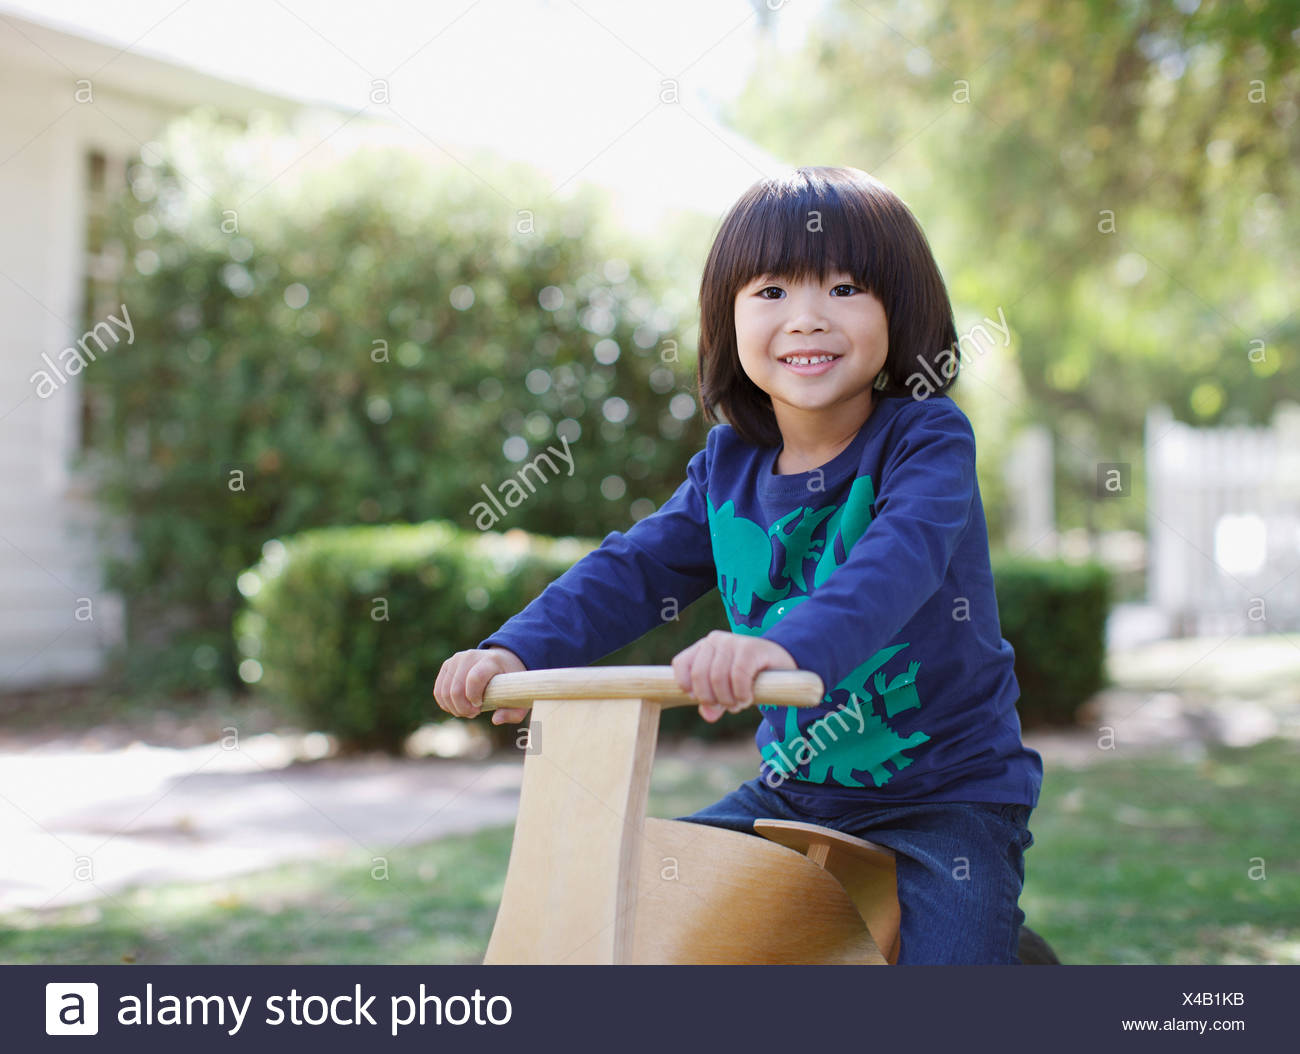 4-5 years,active,asian ethnicity,backyard,boy,boys,california,casual clothing,childhood,color image,day,elementary - Stock Image